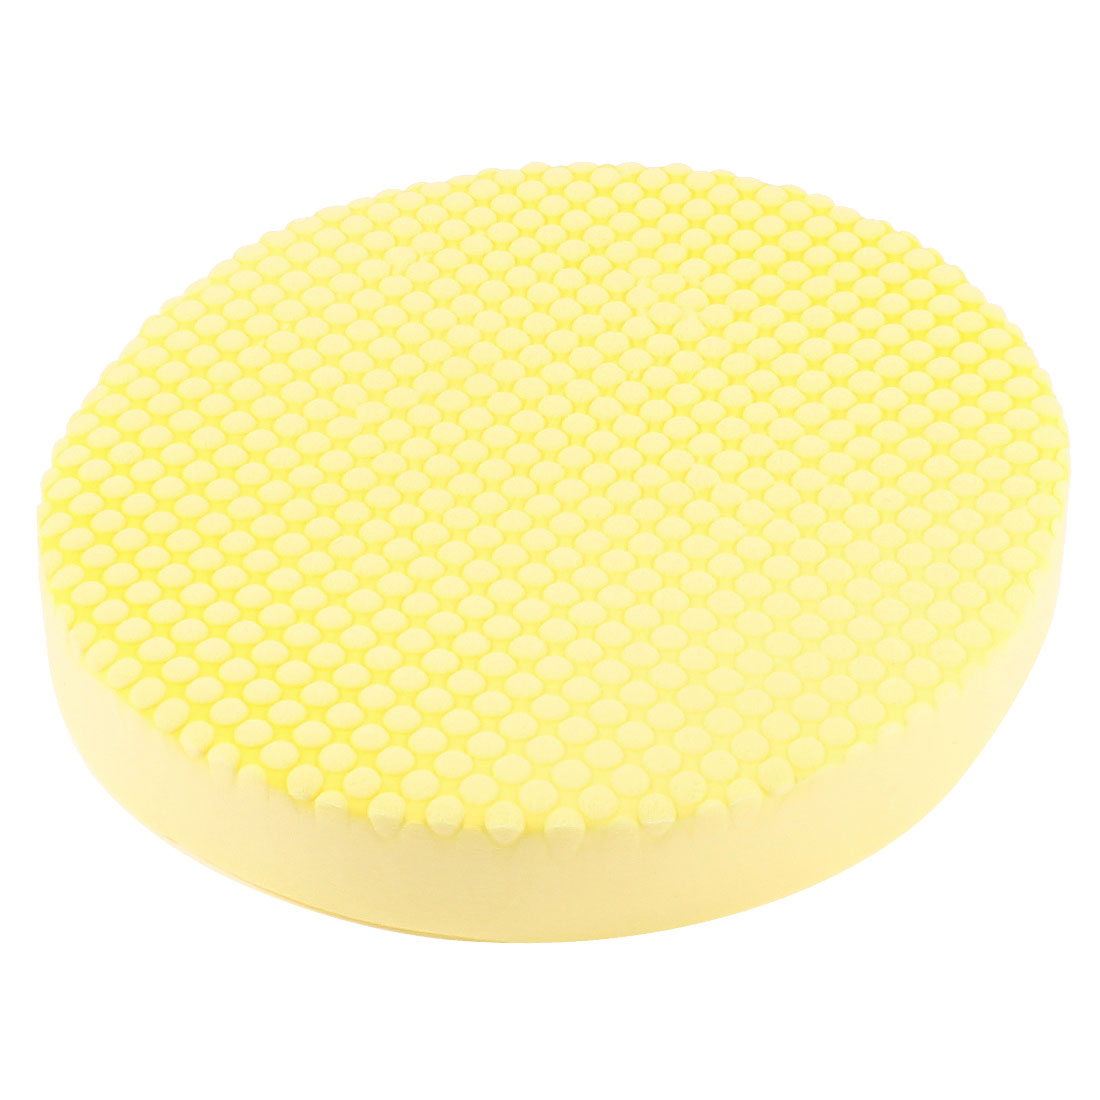 Makeup Removal Soft Sponge Clean Facial Washing Cleaner Powder Puff Pale Yellow